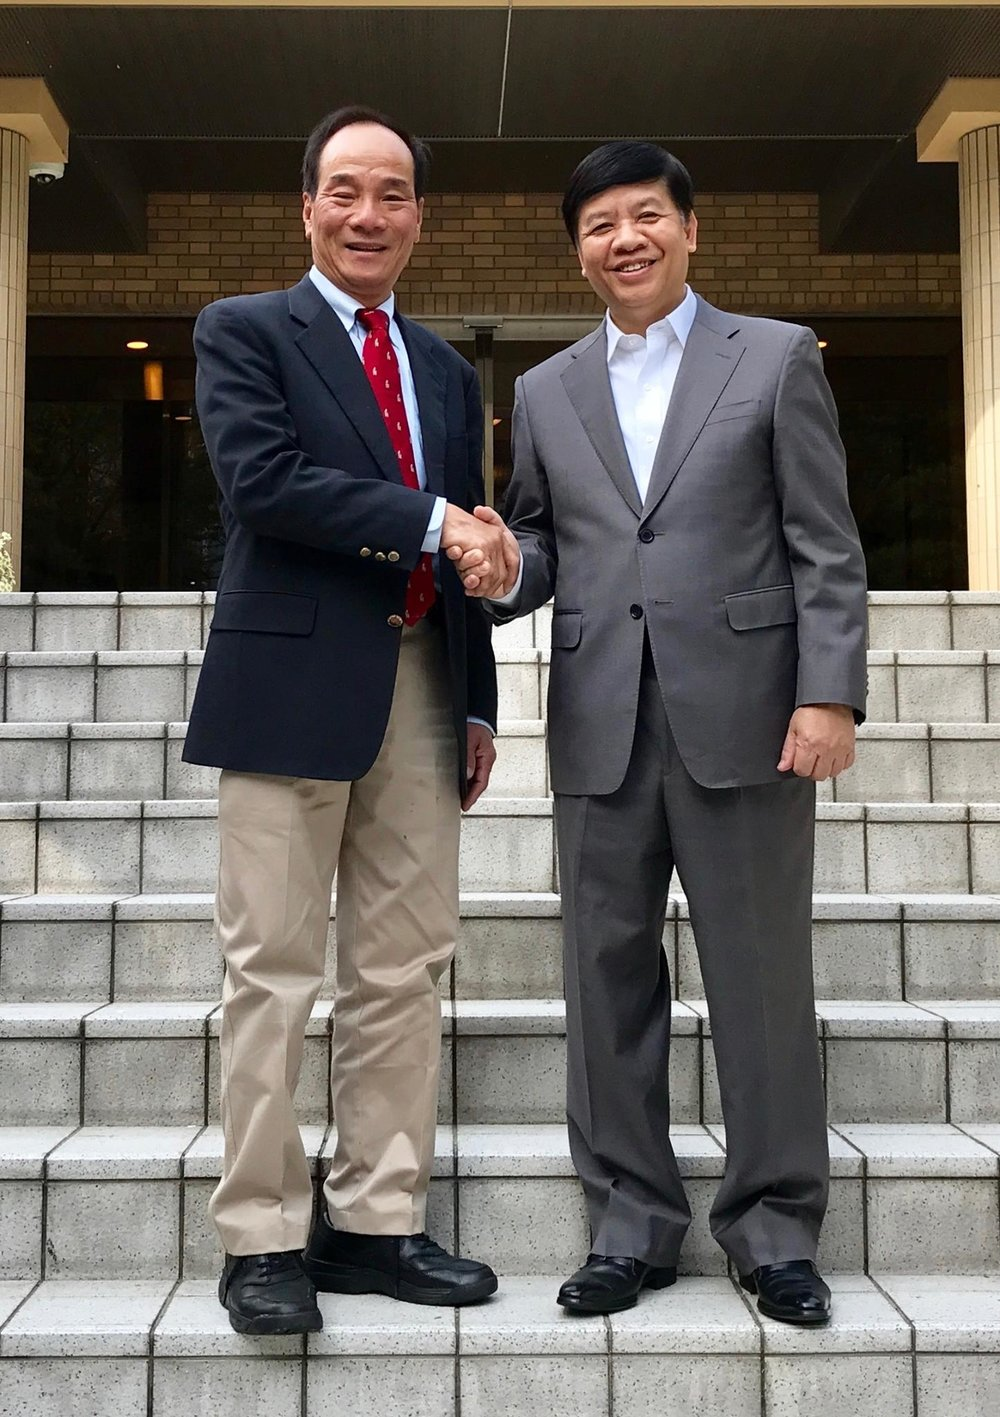 Ca Tran (left), Vietnam Ambassador to Japan, Deputy Minister of Foreign Affairs Nguyen Quốc Cường